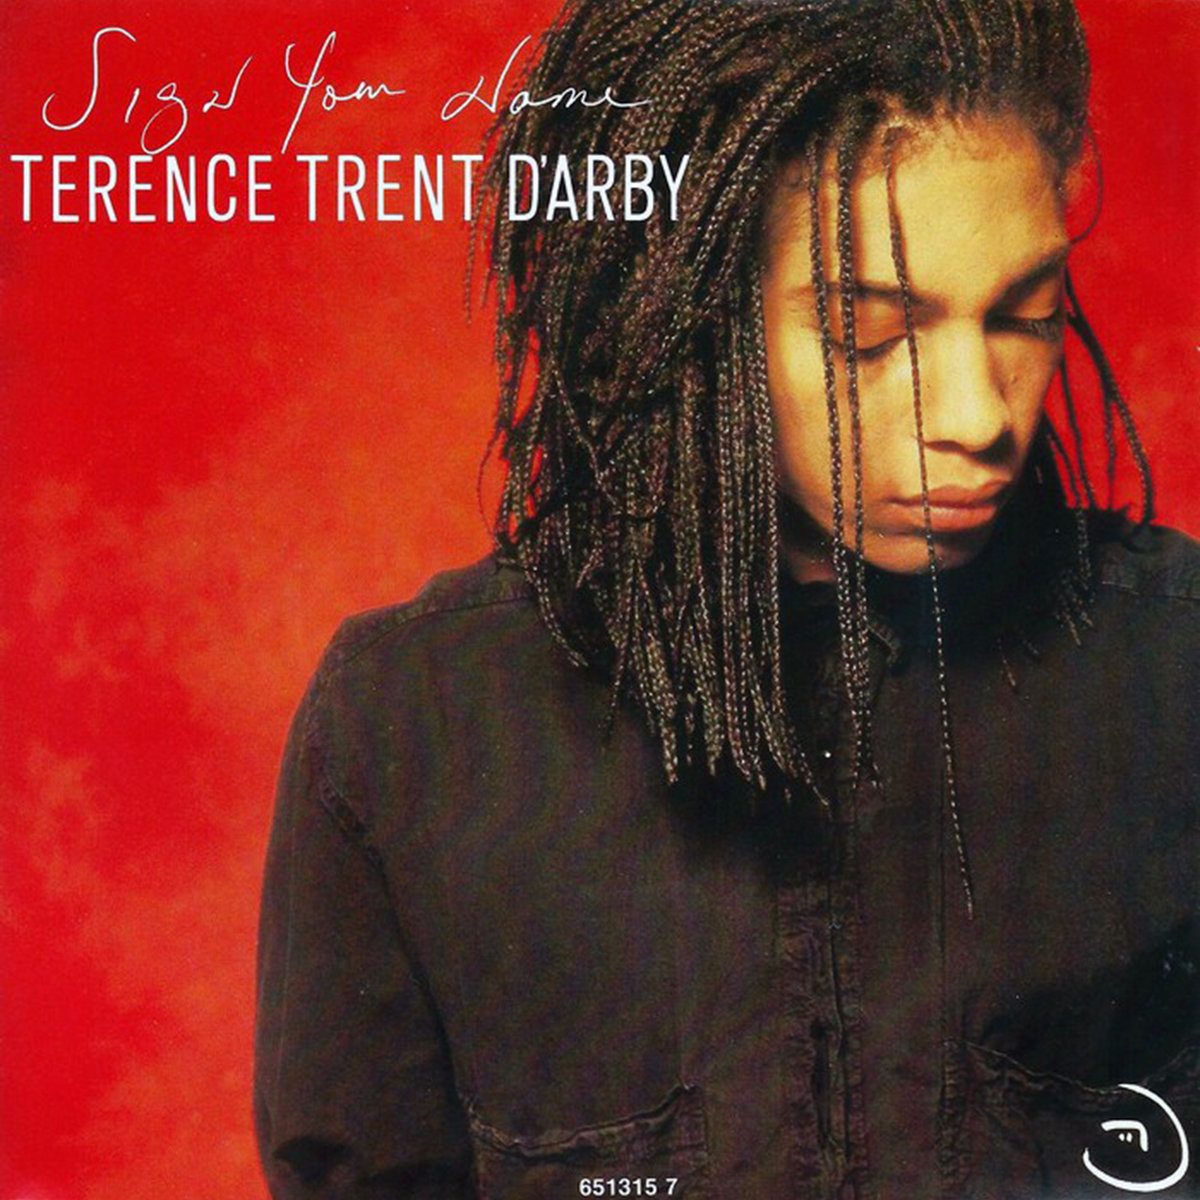 Terence Trent D Arby Sign Your Name Aris Kokou Edit Terence Trent D Arby Aris Kokou